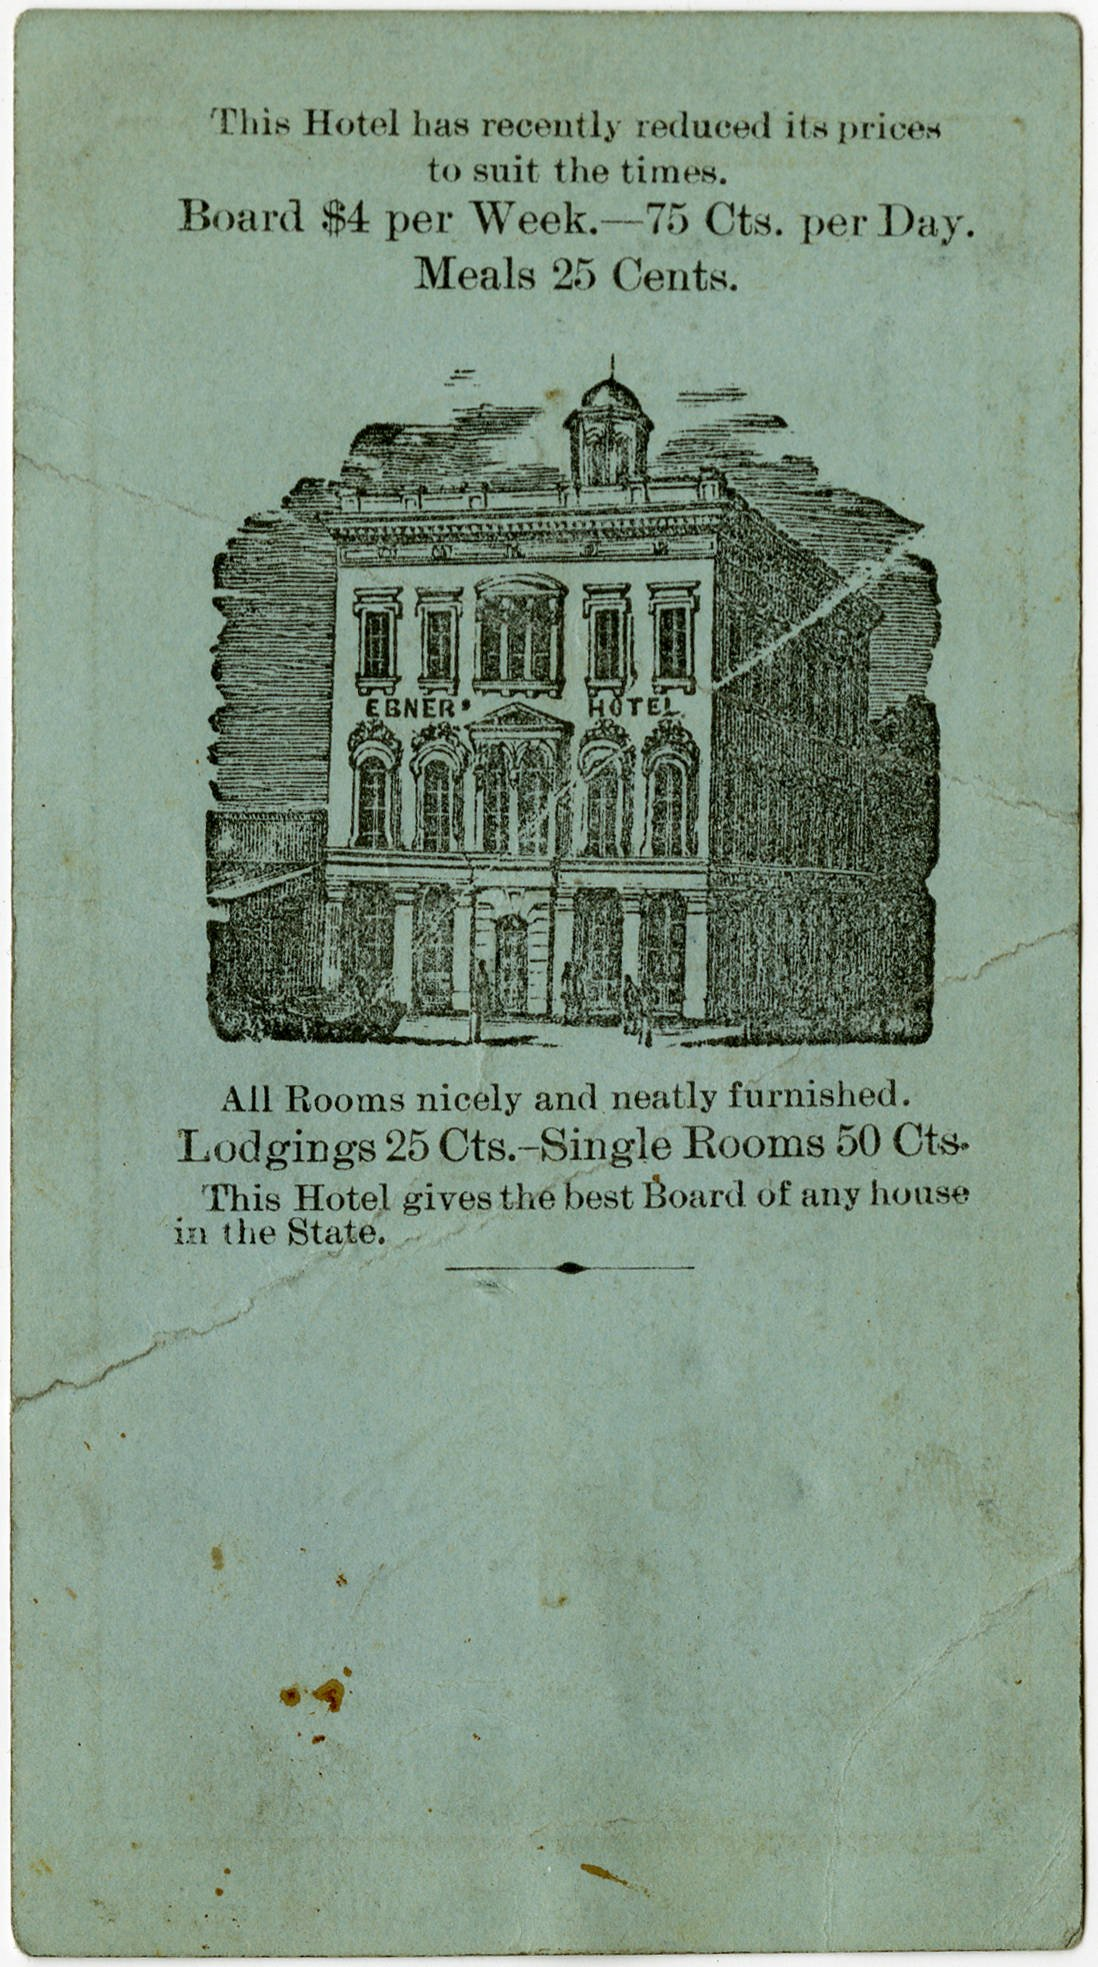 The back of Dietrich's business card doubled as an advertisement for the hotel itself, providing travelers with essential information about the lodgings (Sacramento Public Library).